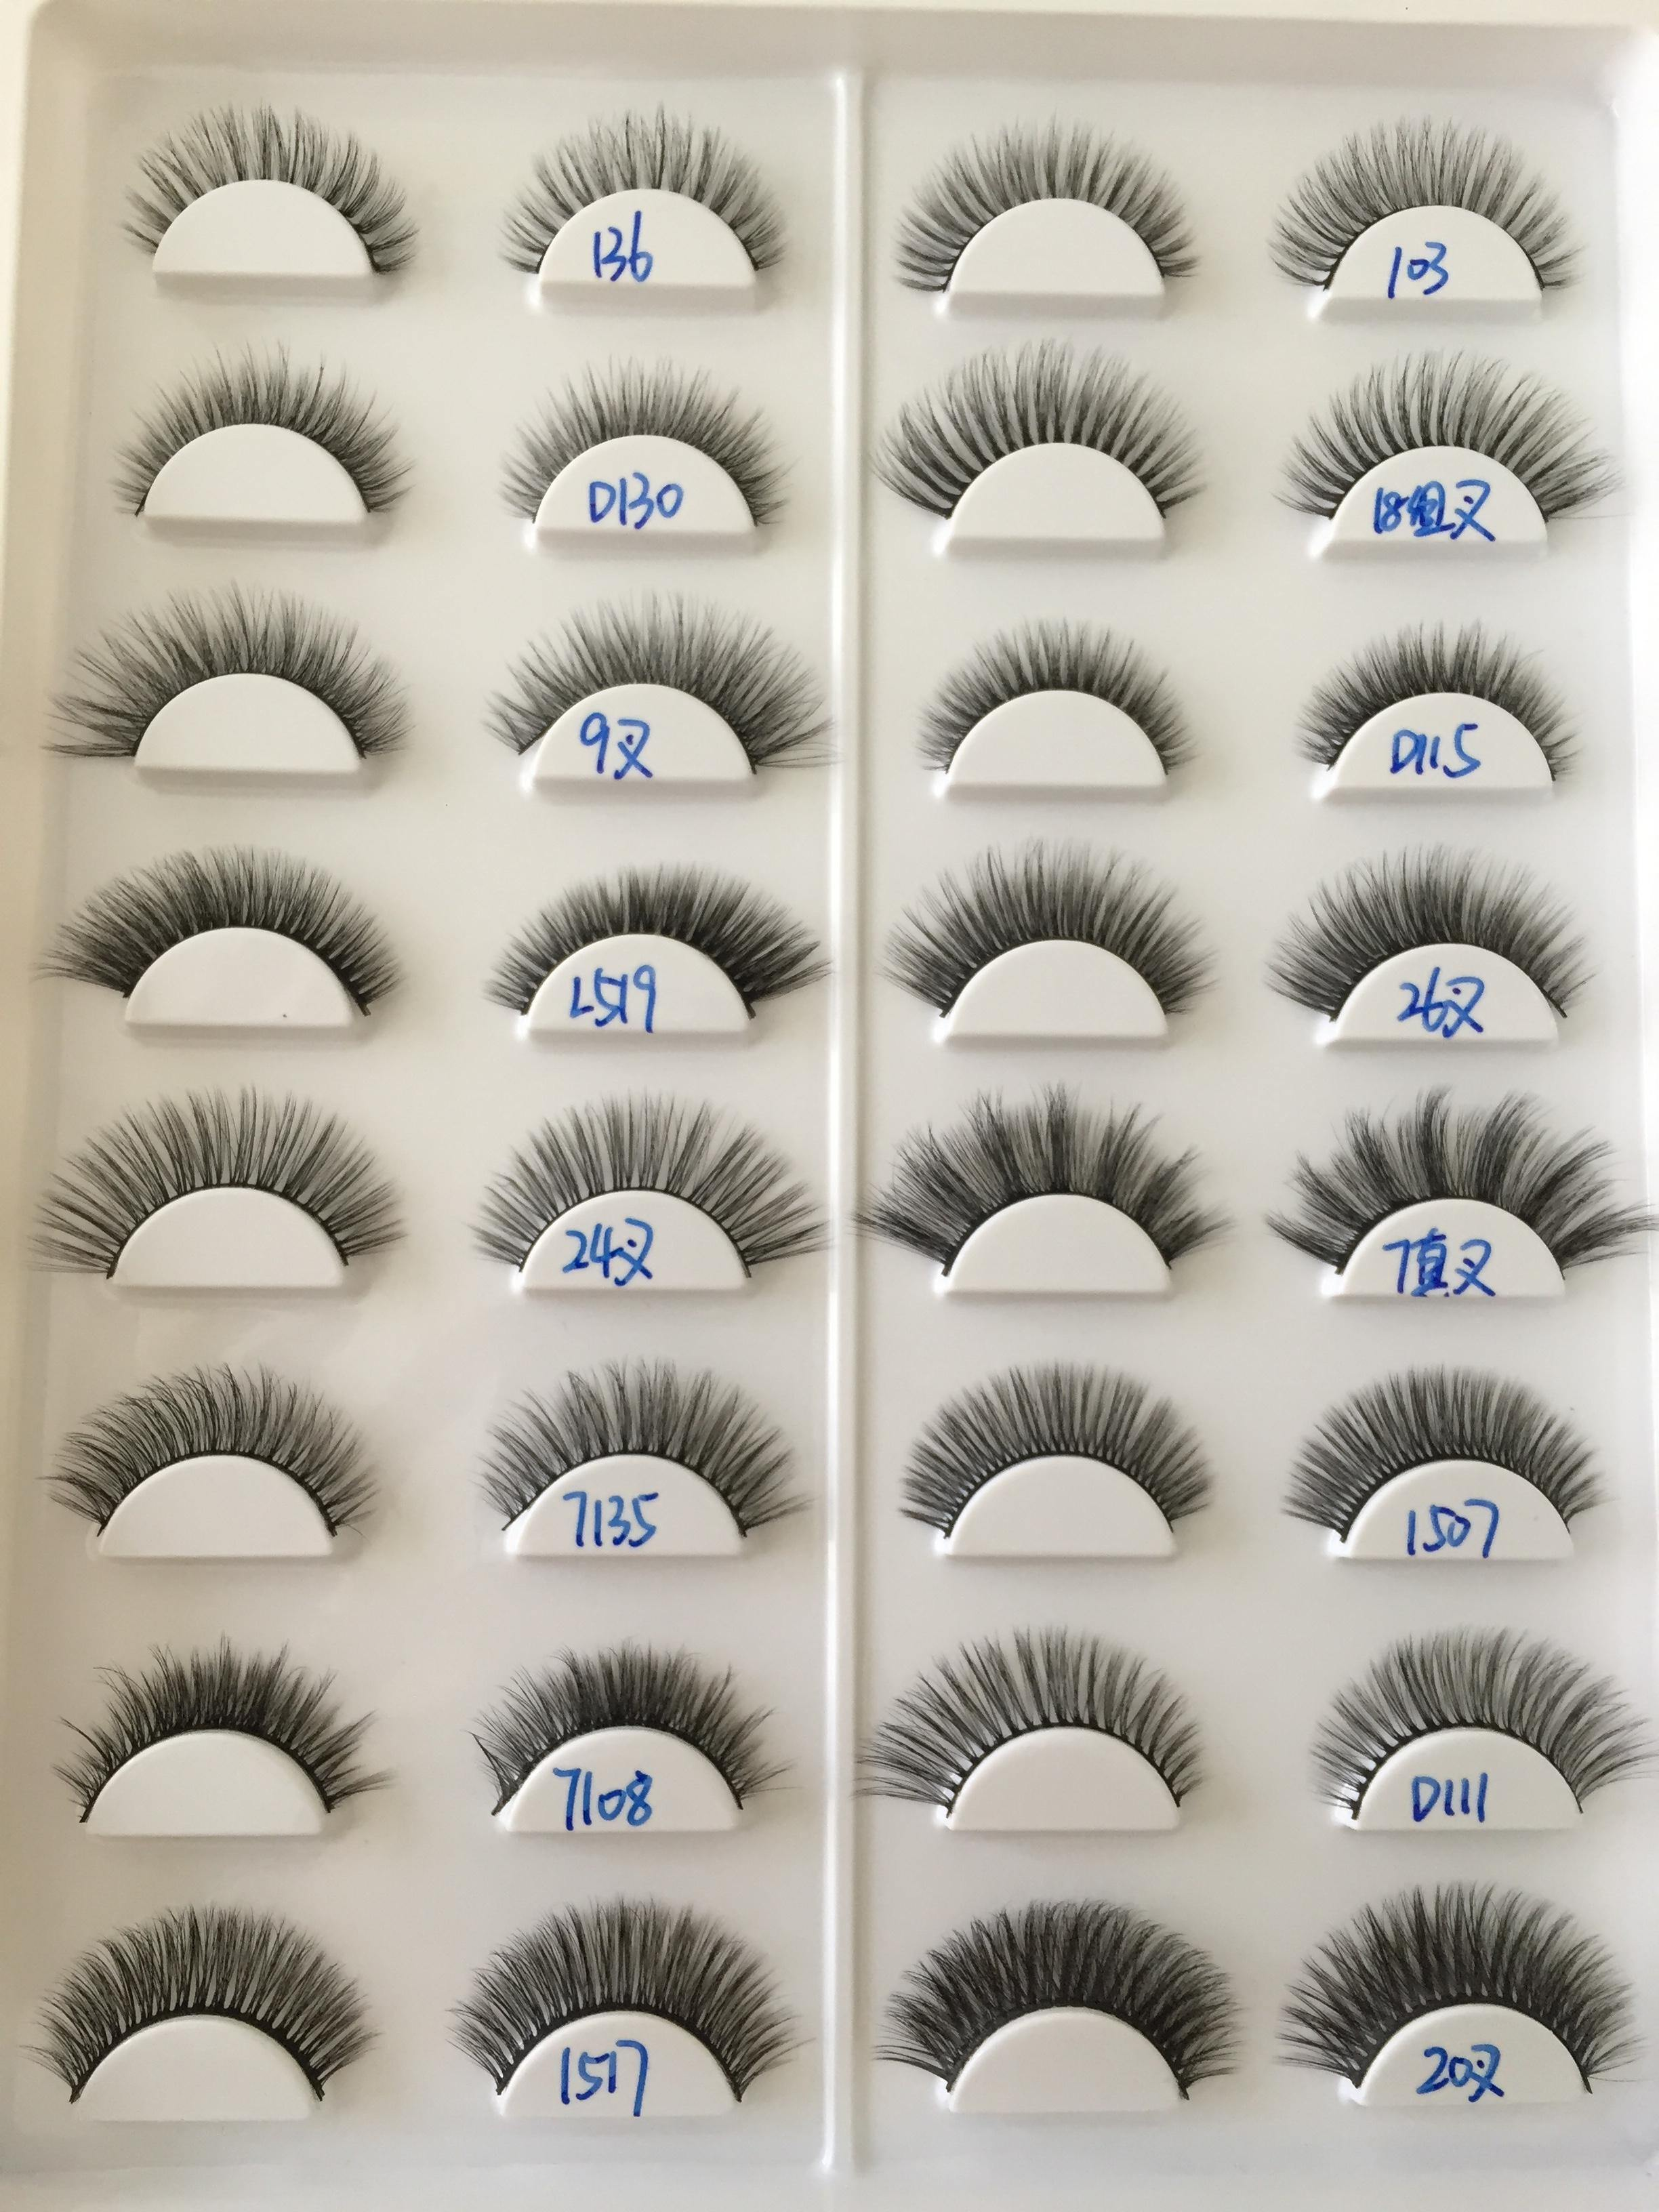 No glue sticky 3D silk eyelashes - monaveli - beauty - No glue sticky 3D silk eyelashes - mymonaveli.com